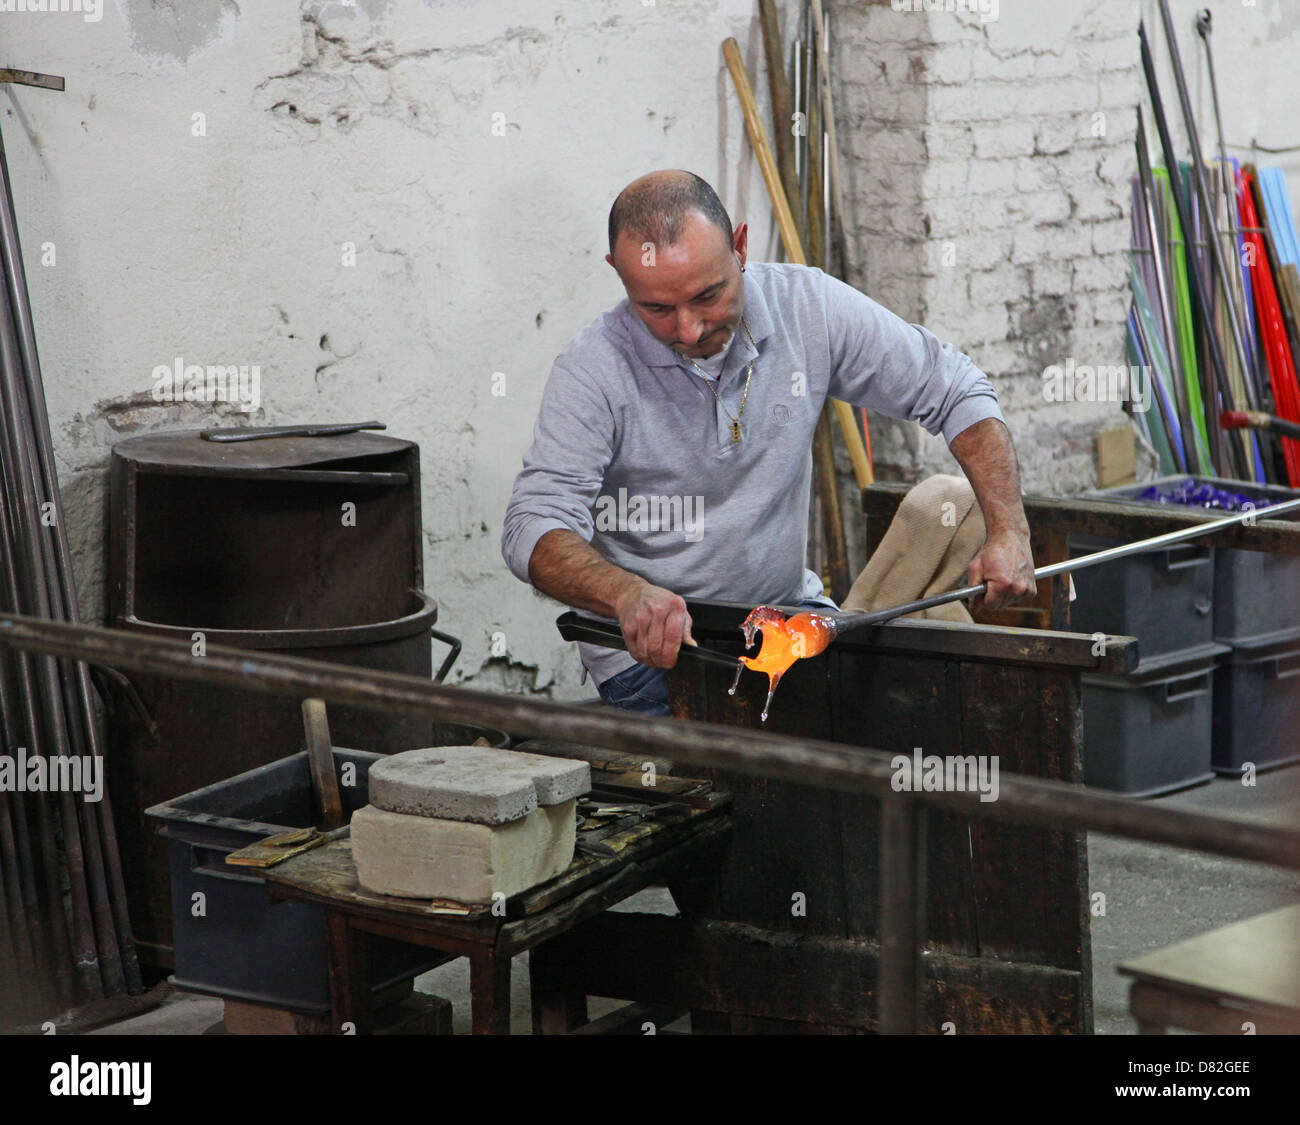 A man blowing a glass animal in a glass factory Murano Venice Italy - Stock Image